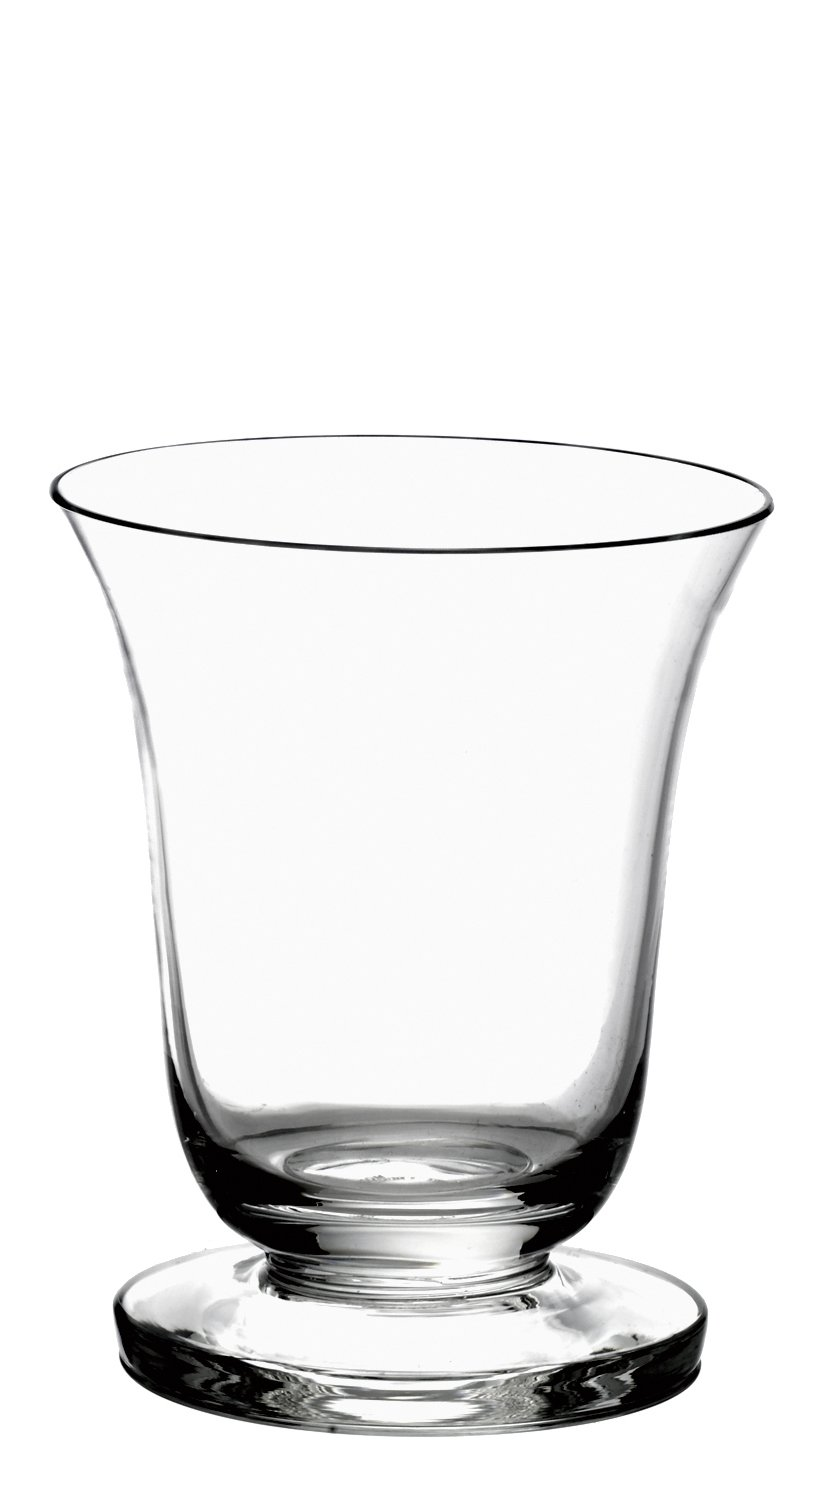 La Rochere Set Of 6, 7-ounce Jean Luce Mouth Blown Wine Glasses by La Rochere